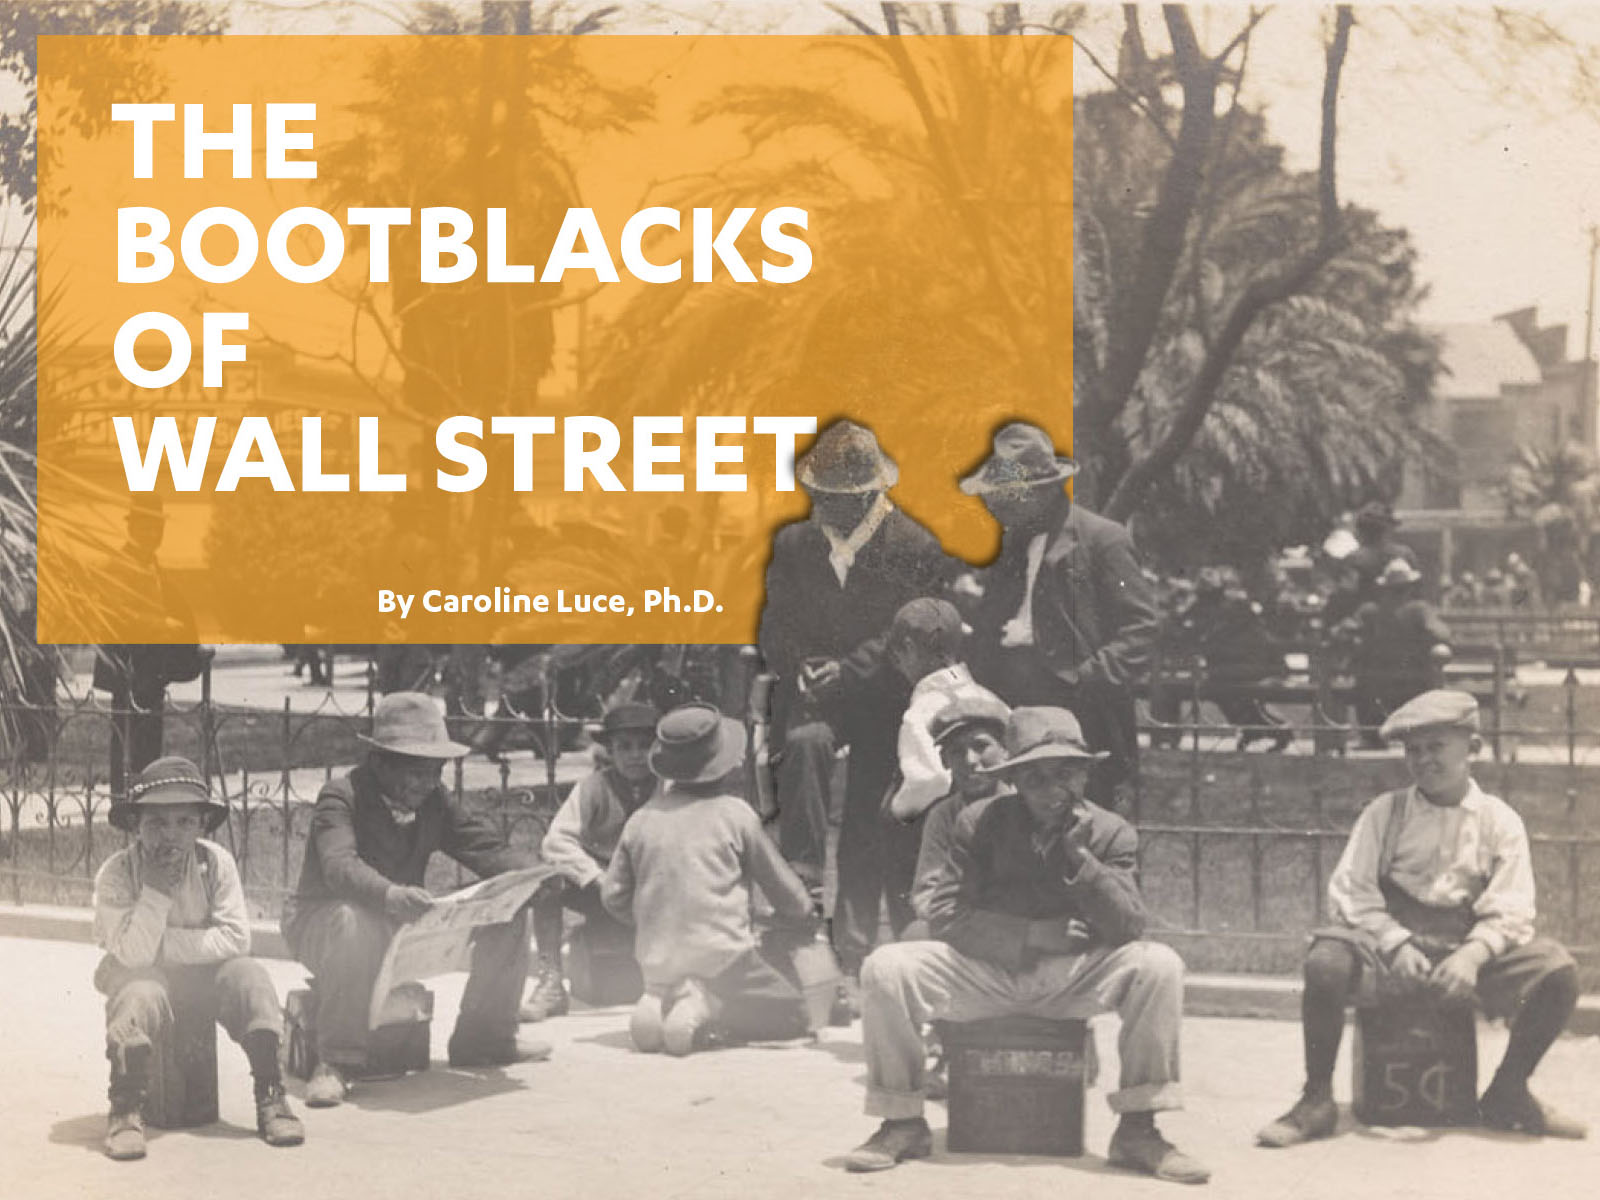 The Bootblacks of Wall Street